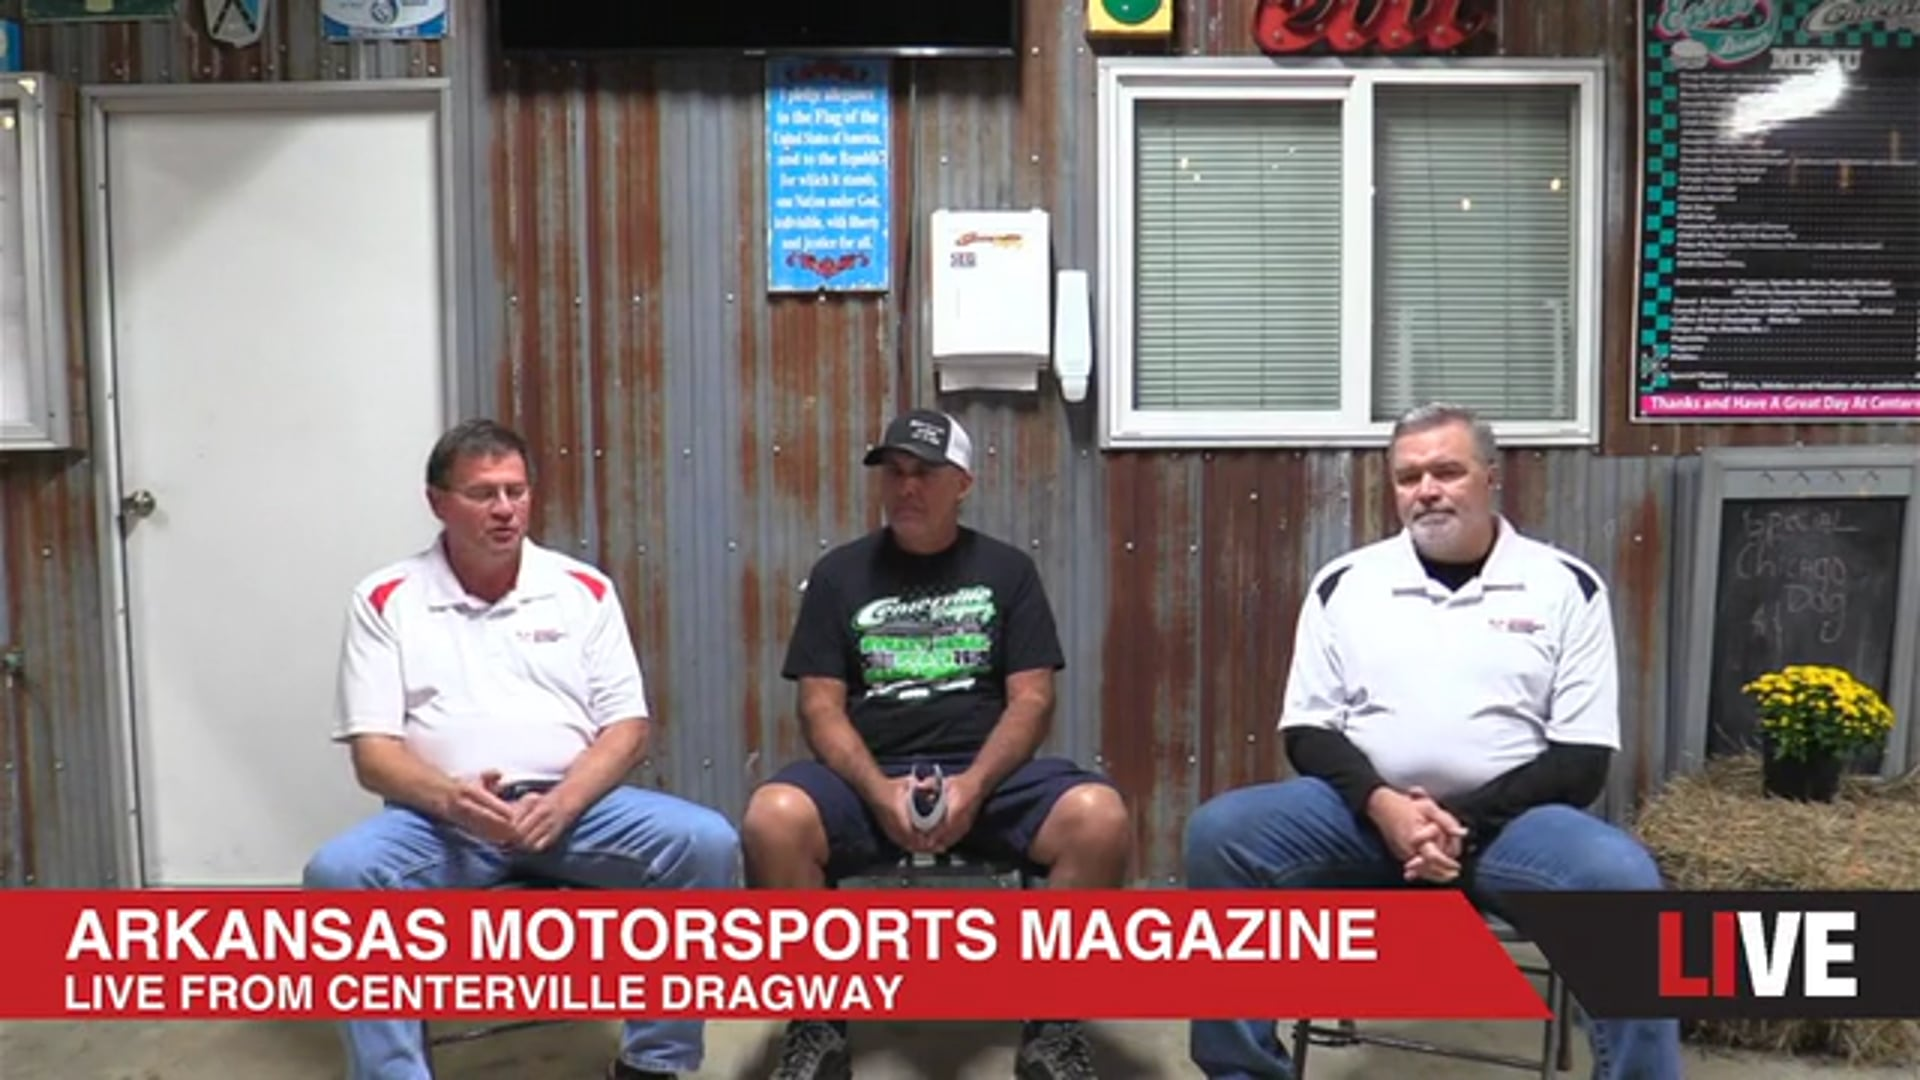 TUESDAY NIGHT TUNE UP - S1 E2 -  Centerville Dragway Annual Street Legal State Championship